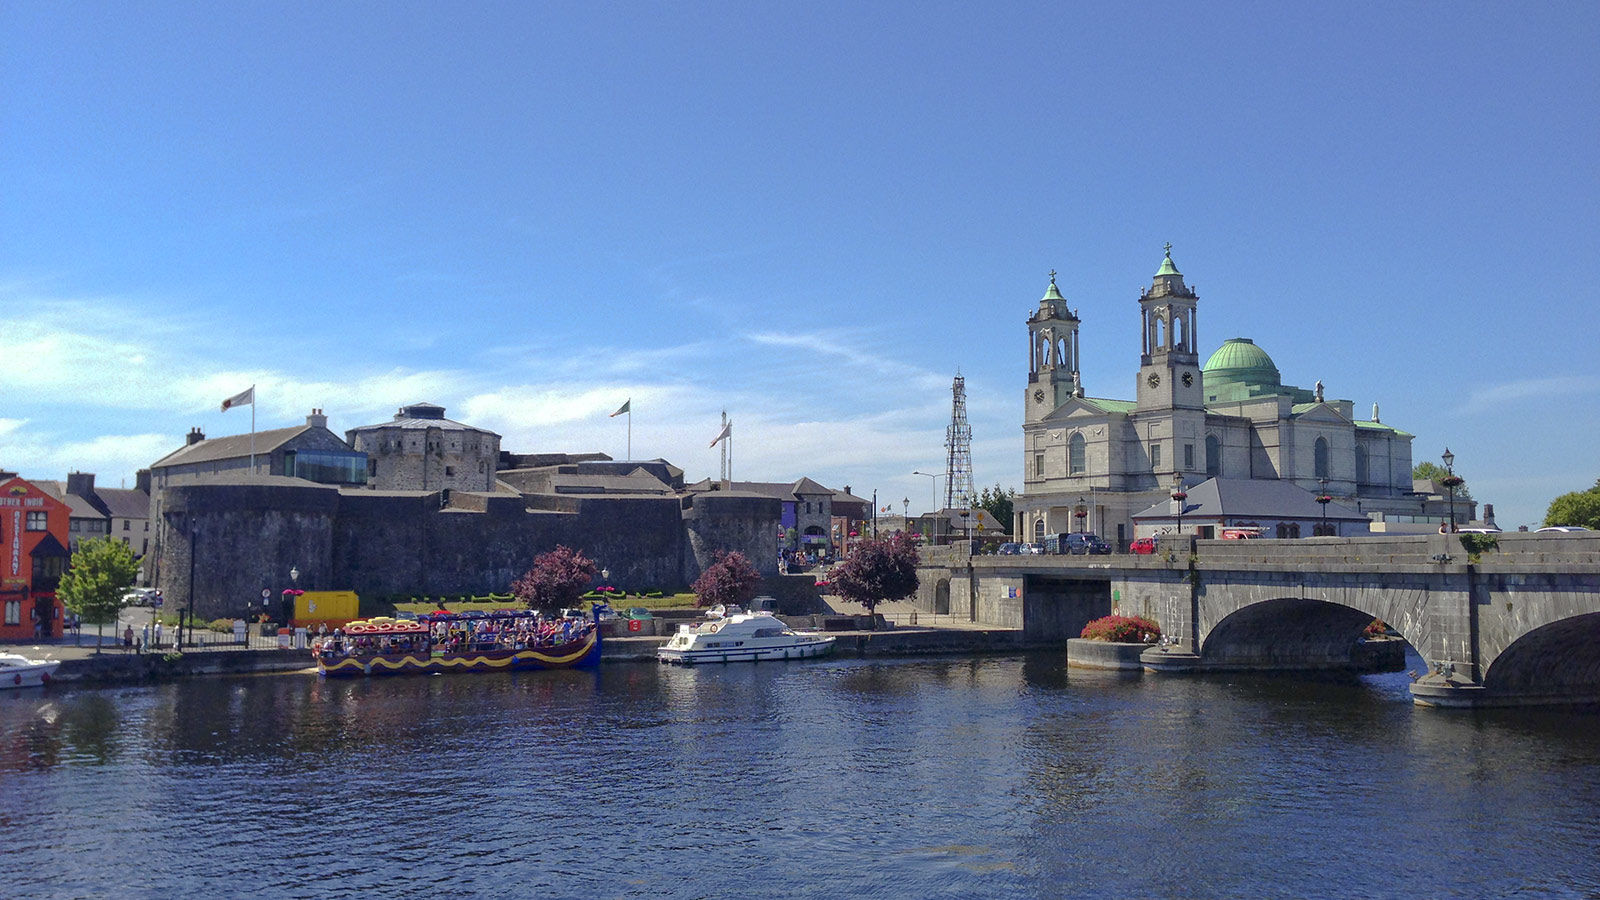 Athlone, at the hearth of it